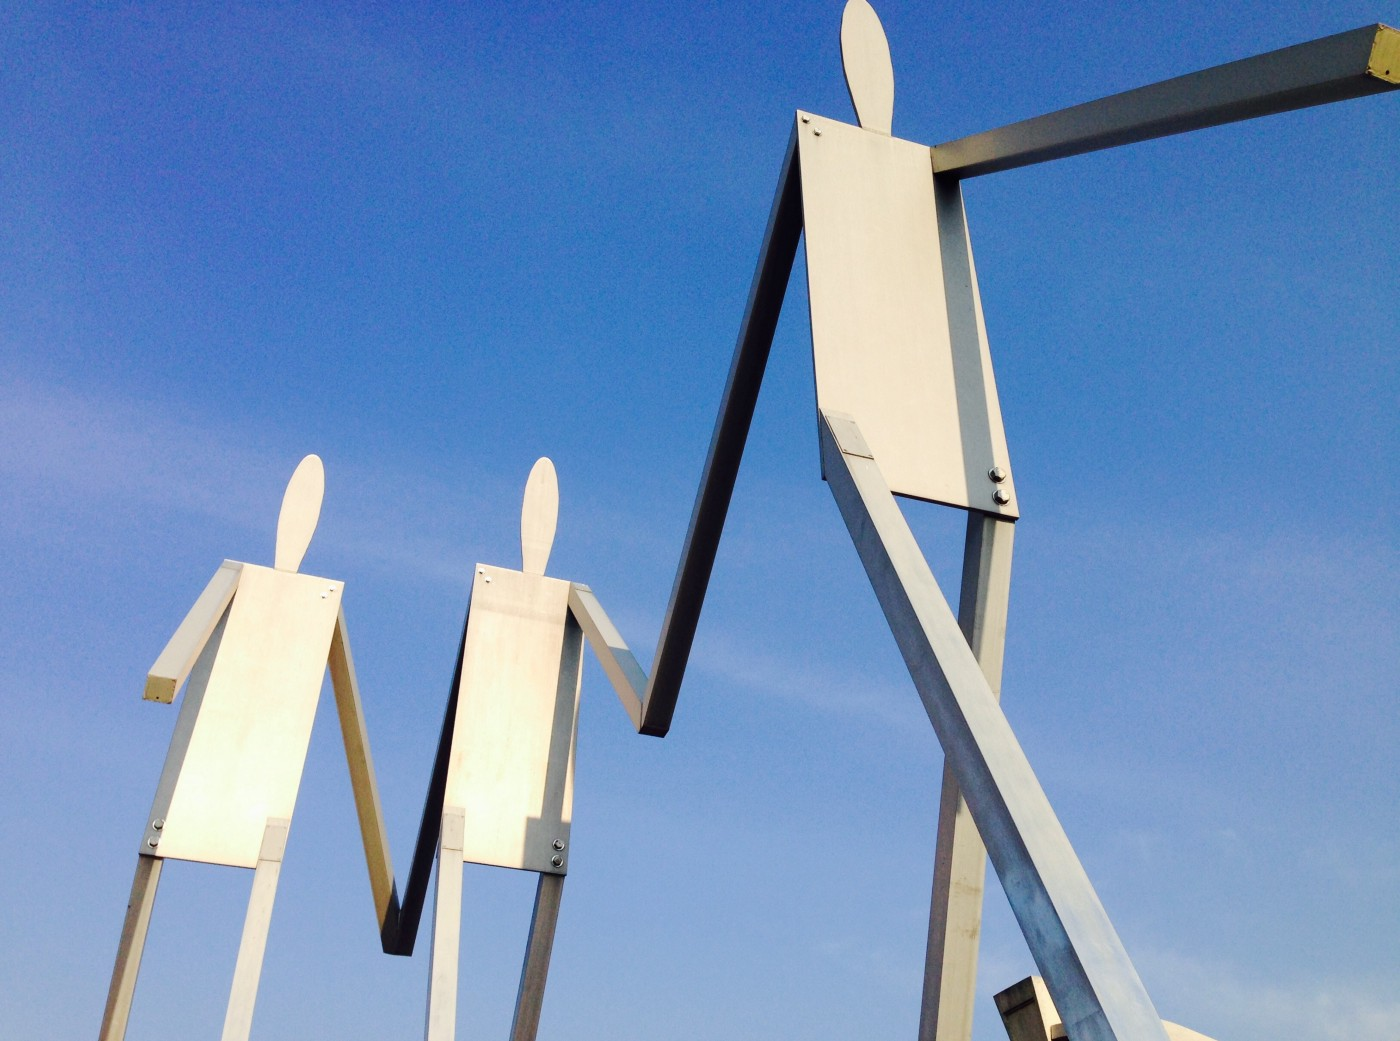 A photograph of a public sculpture featuring three silver metallic human figures striding forward together, hand in hand, tall against the background of a clear blue sky.